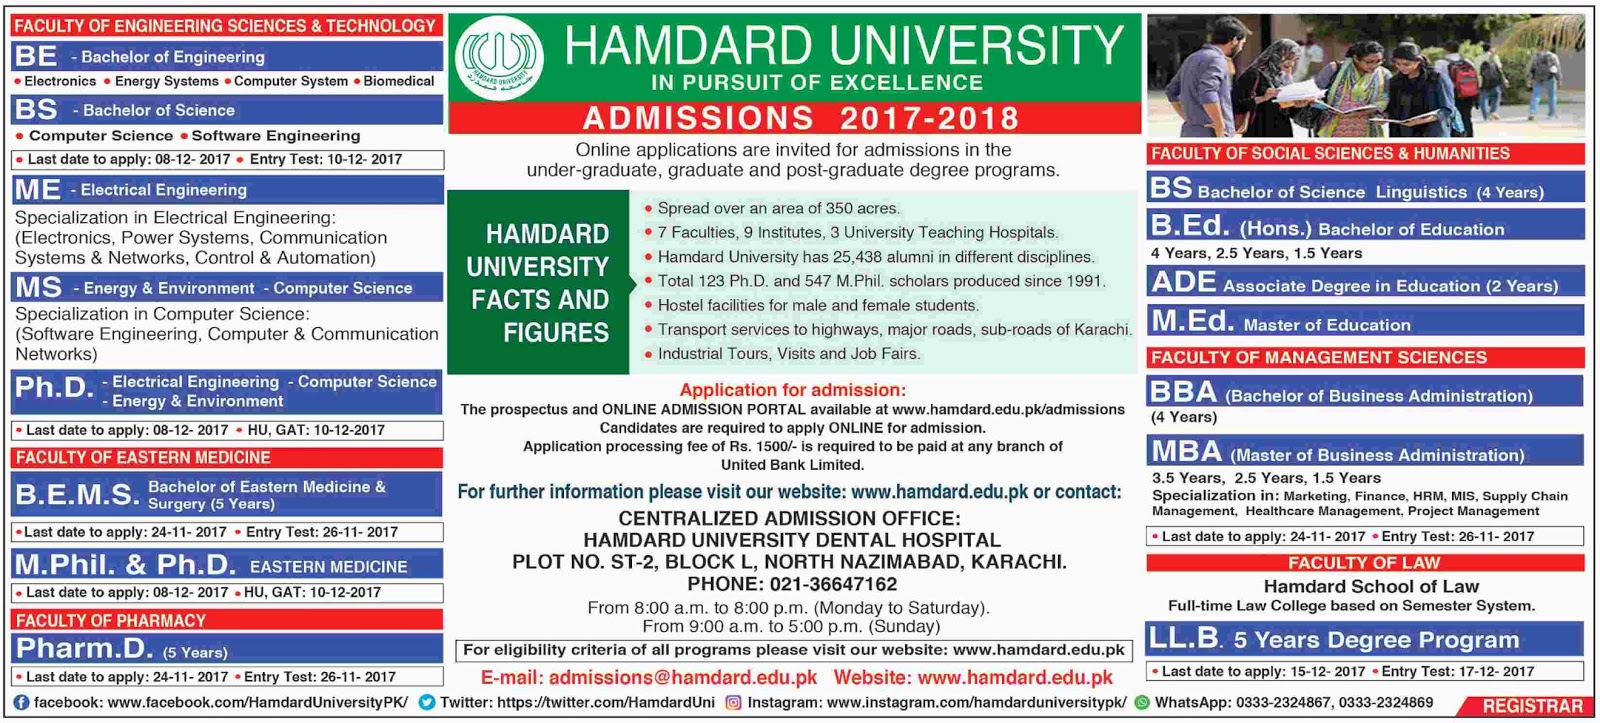 Admissions Open in Hamdard University Karachi